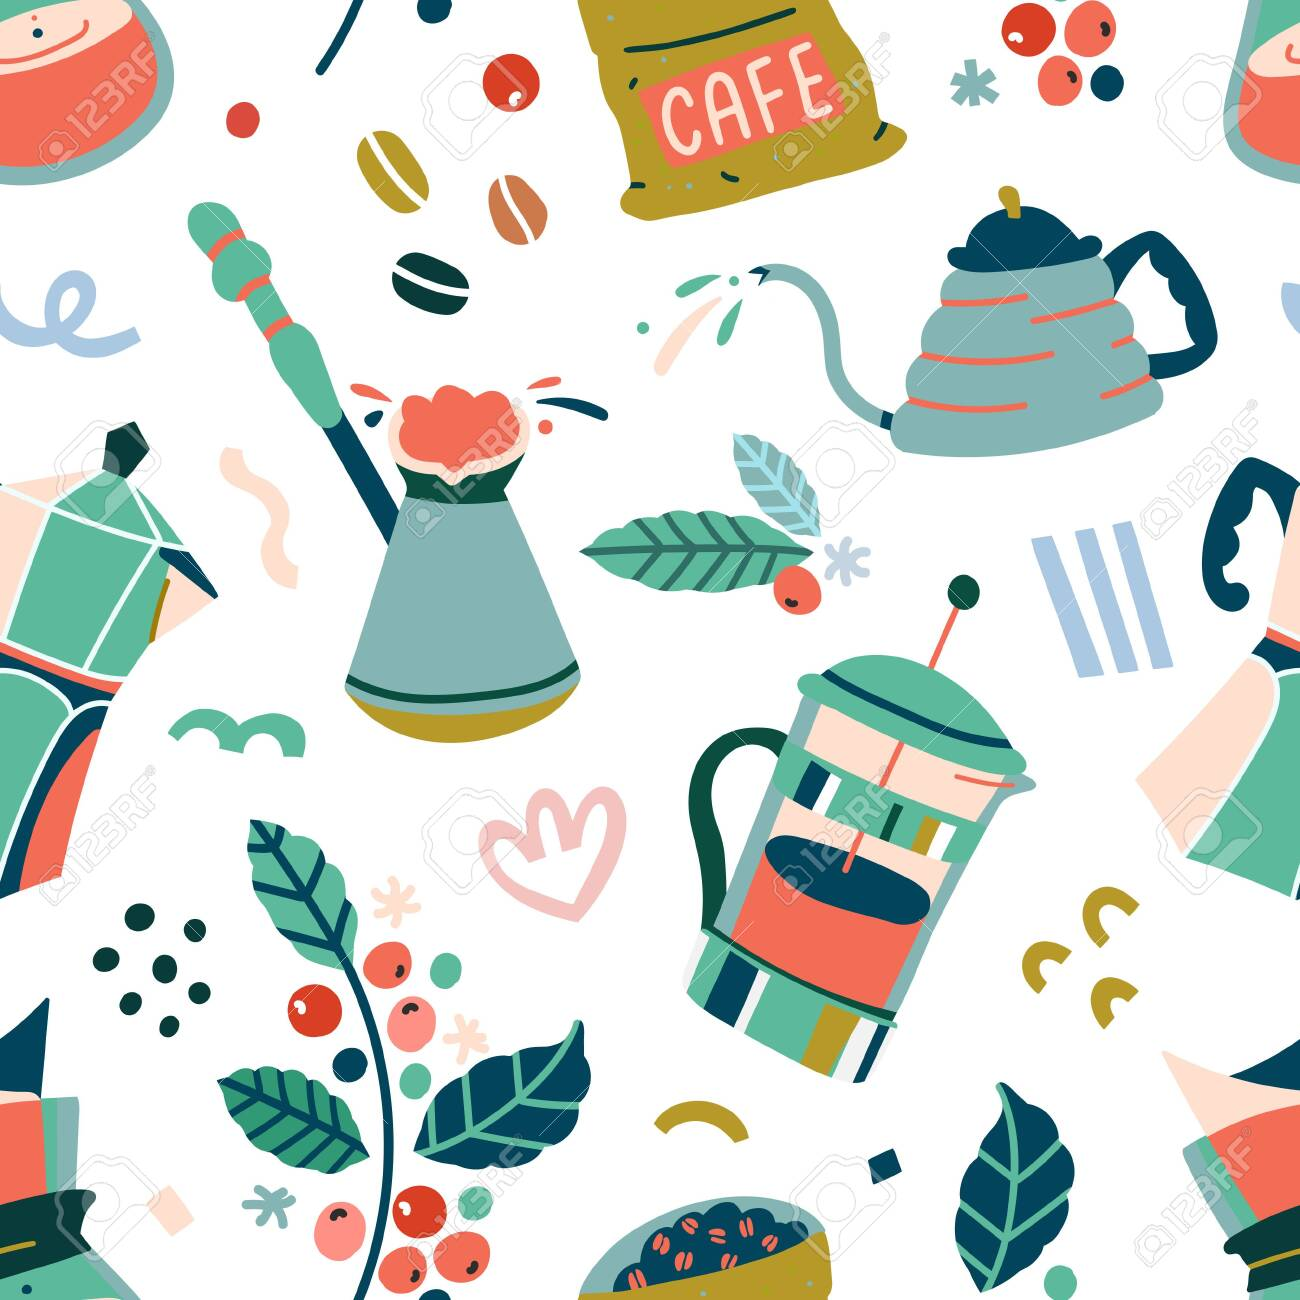 Coffee Tools Backdrop Made Of Simple Vector Doodle Illustrations Royalty Free Cliparts Vectors And Stock Illustration Image 137354900